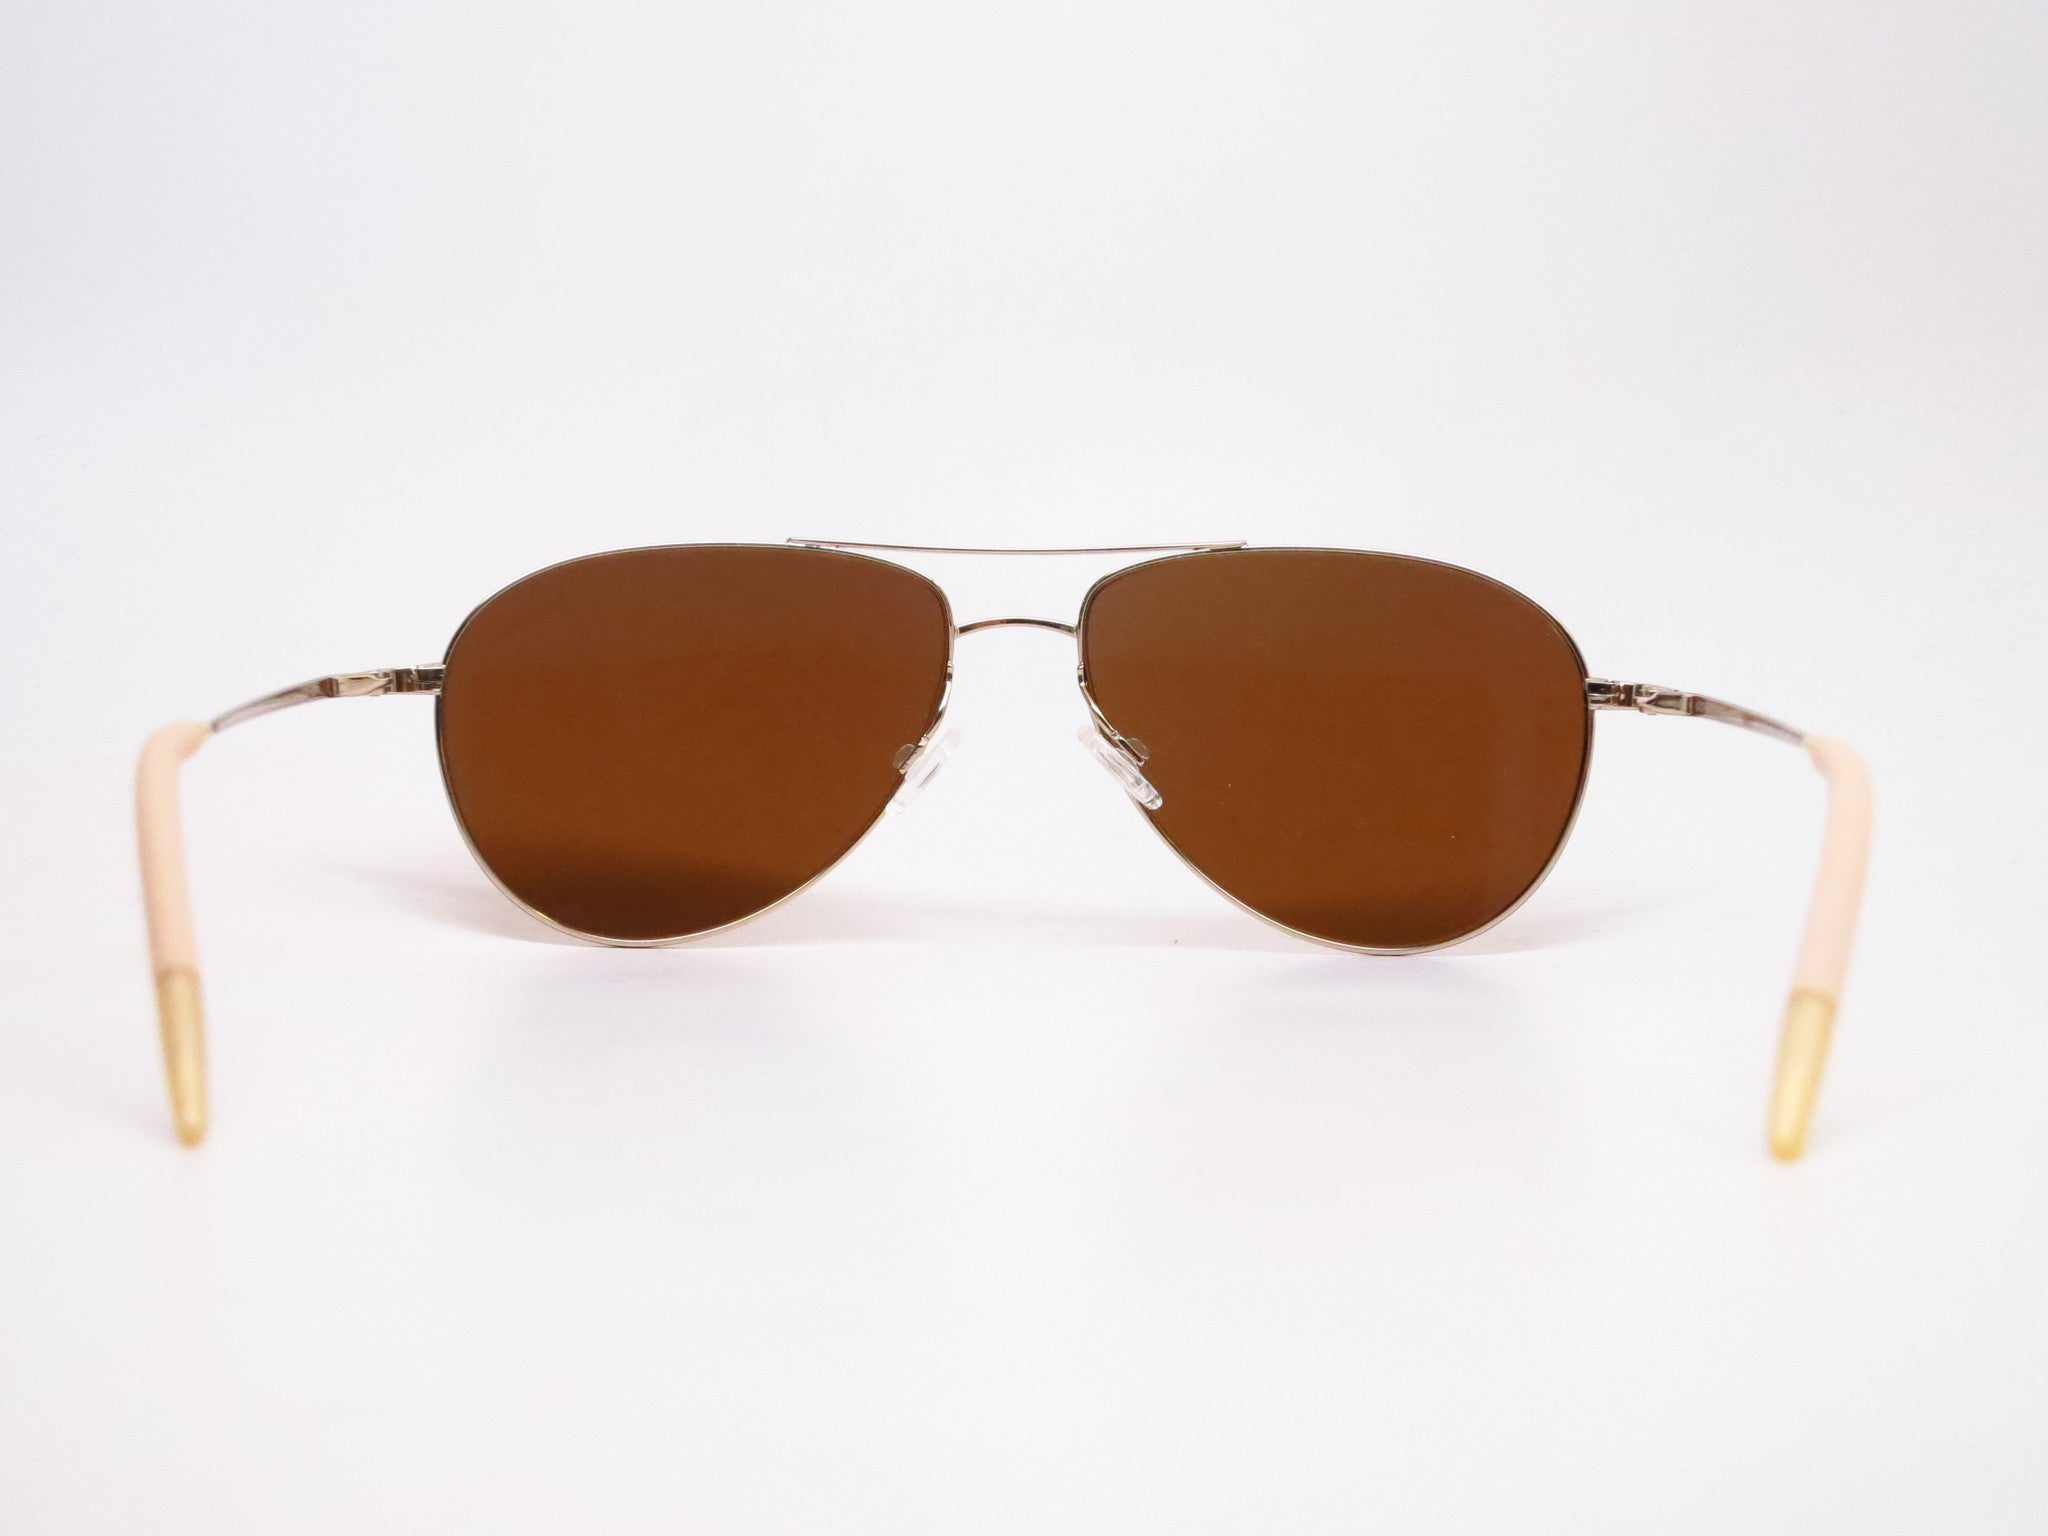 773f7066e6d ... Oliver Peoples Benedict OV 1002S 5035/N6 Gold Polarized Sunglasses -  Eye Heart Shades ...